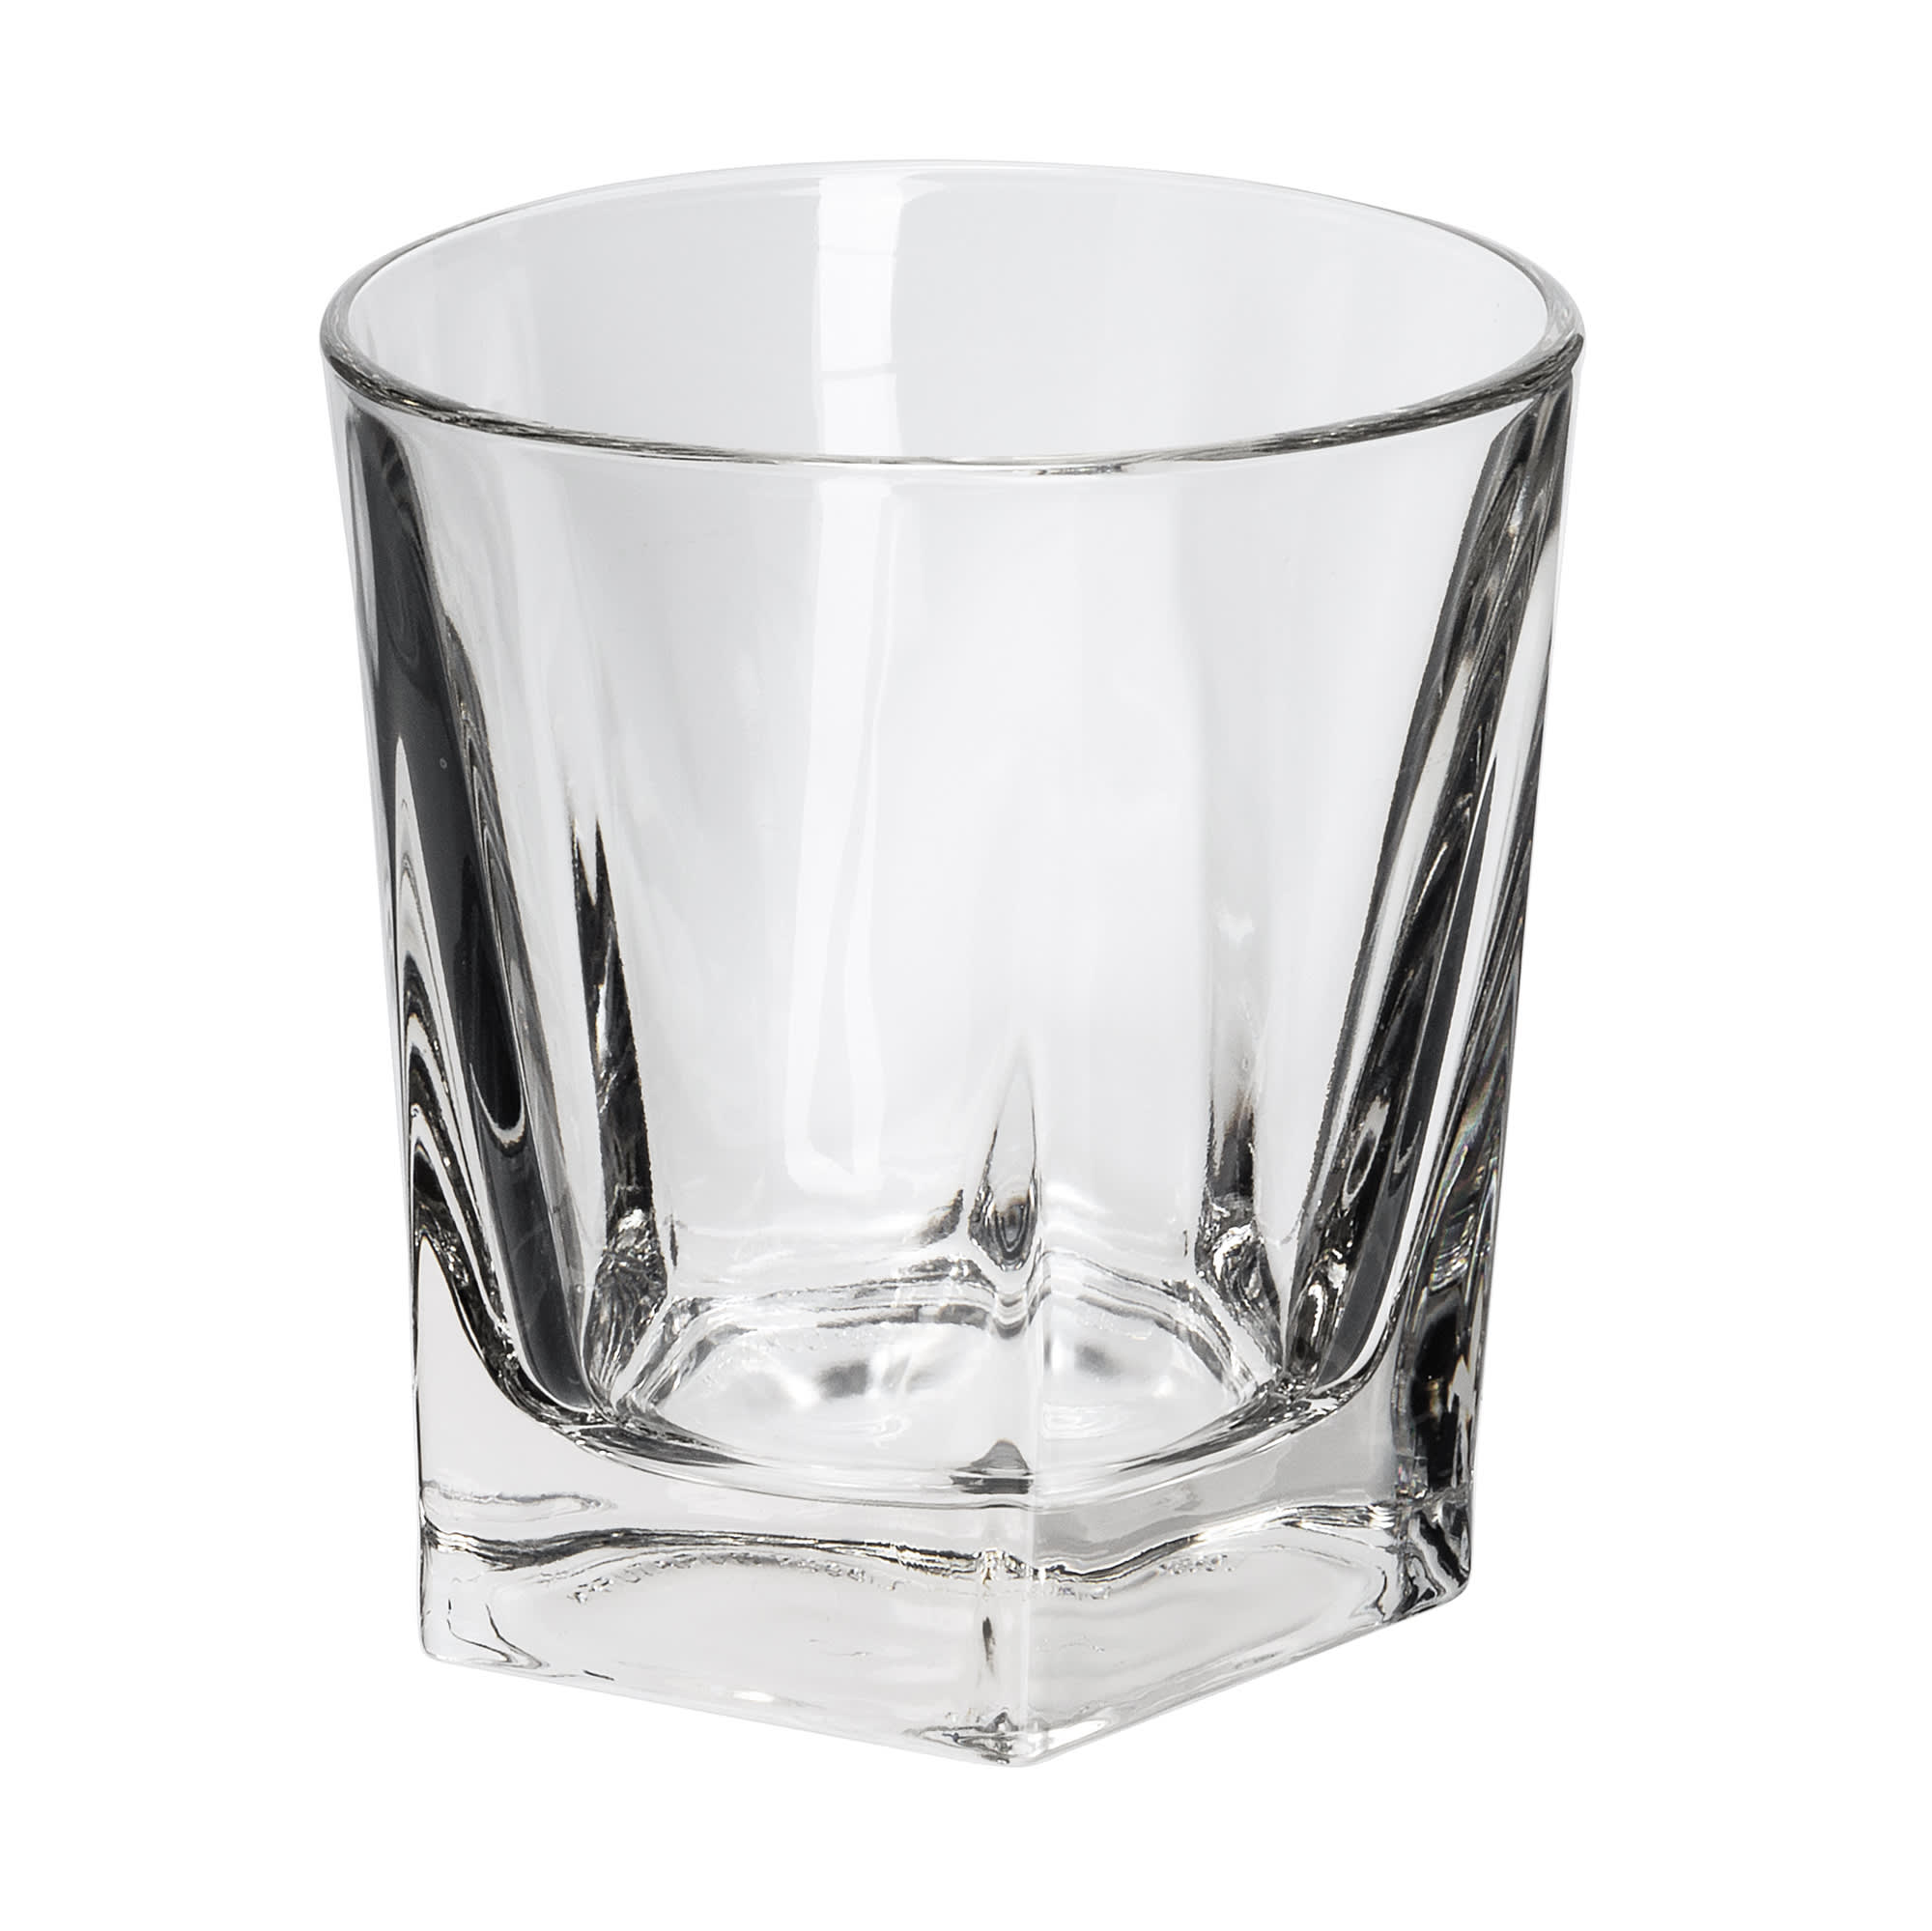 Libbey 15482 12.25 oz Double Old Fashioned Glass - Inverness